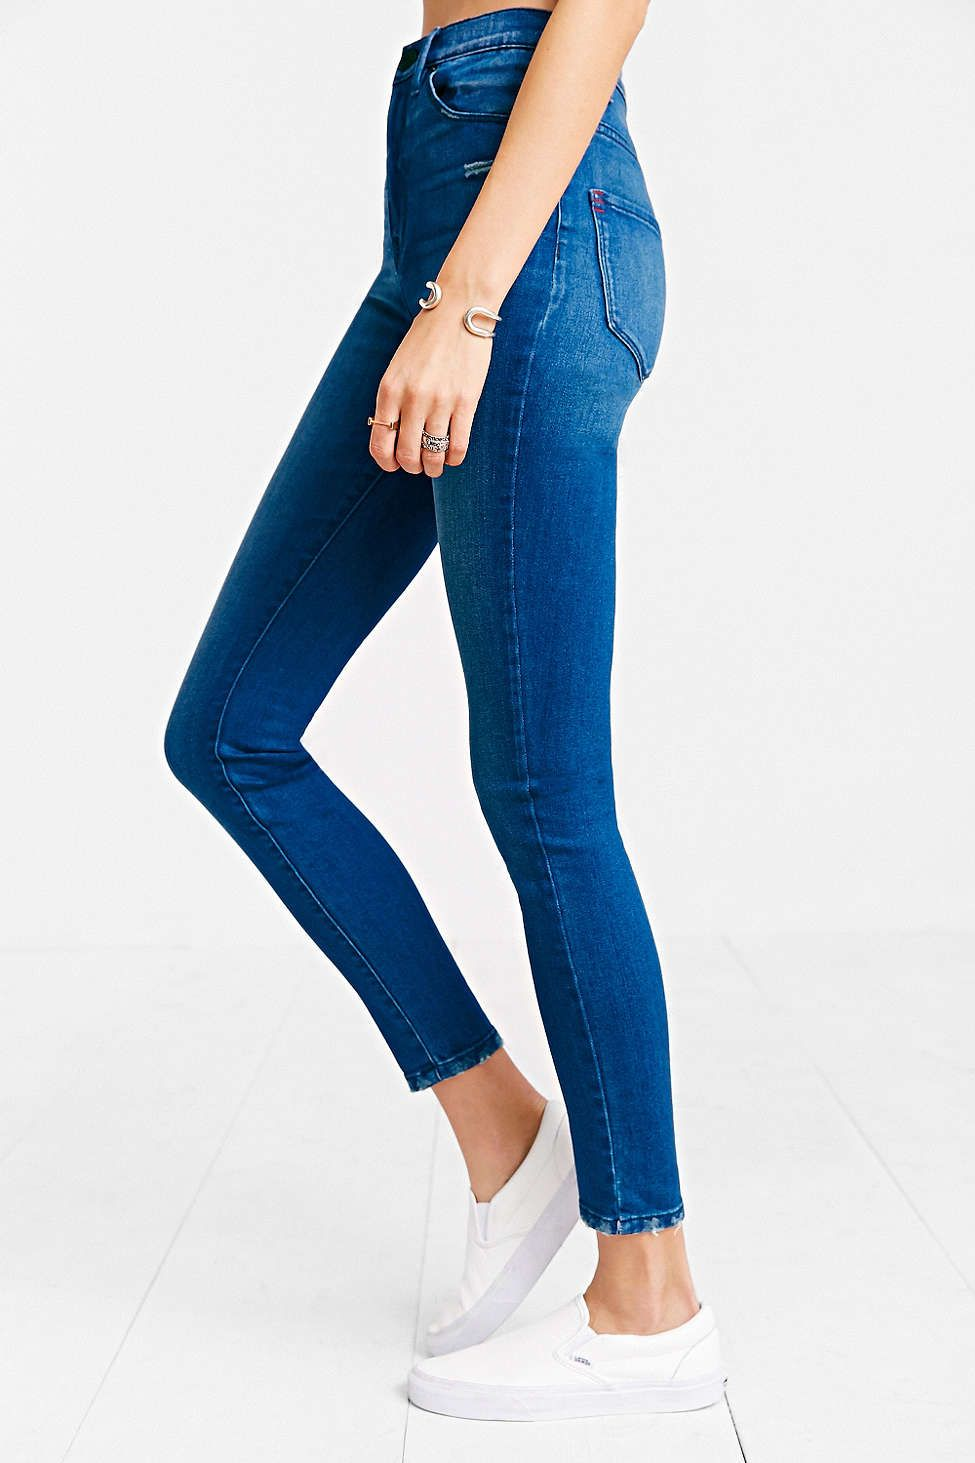 BDG Twig Super High-Rise Jean - Carley